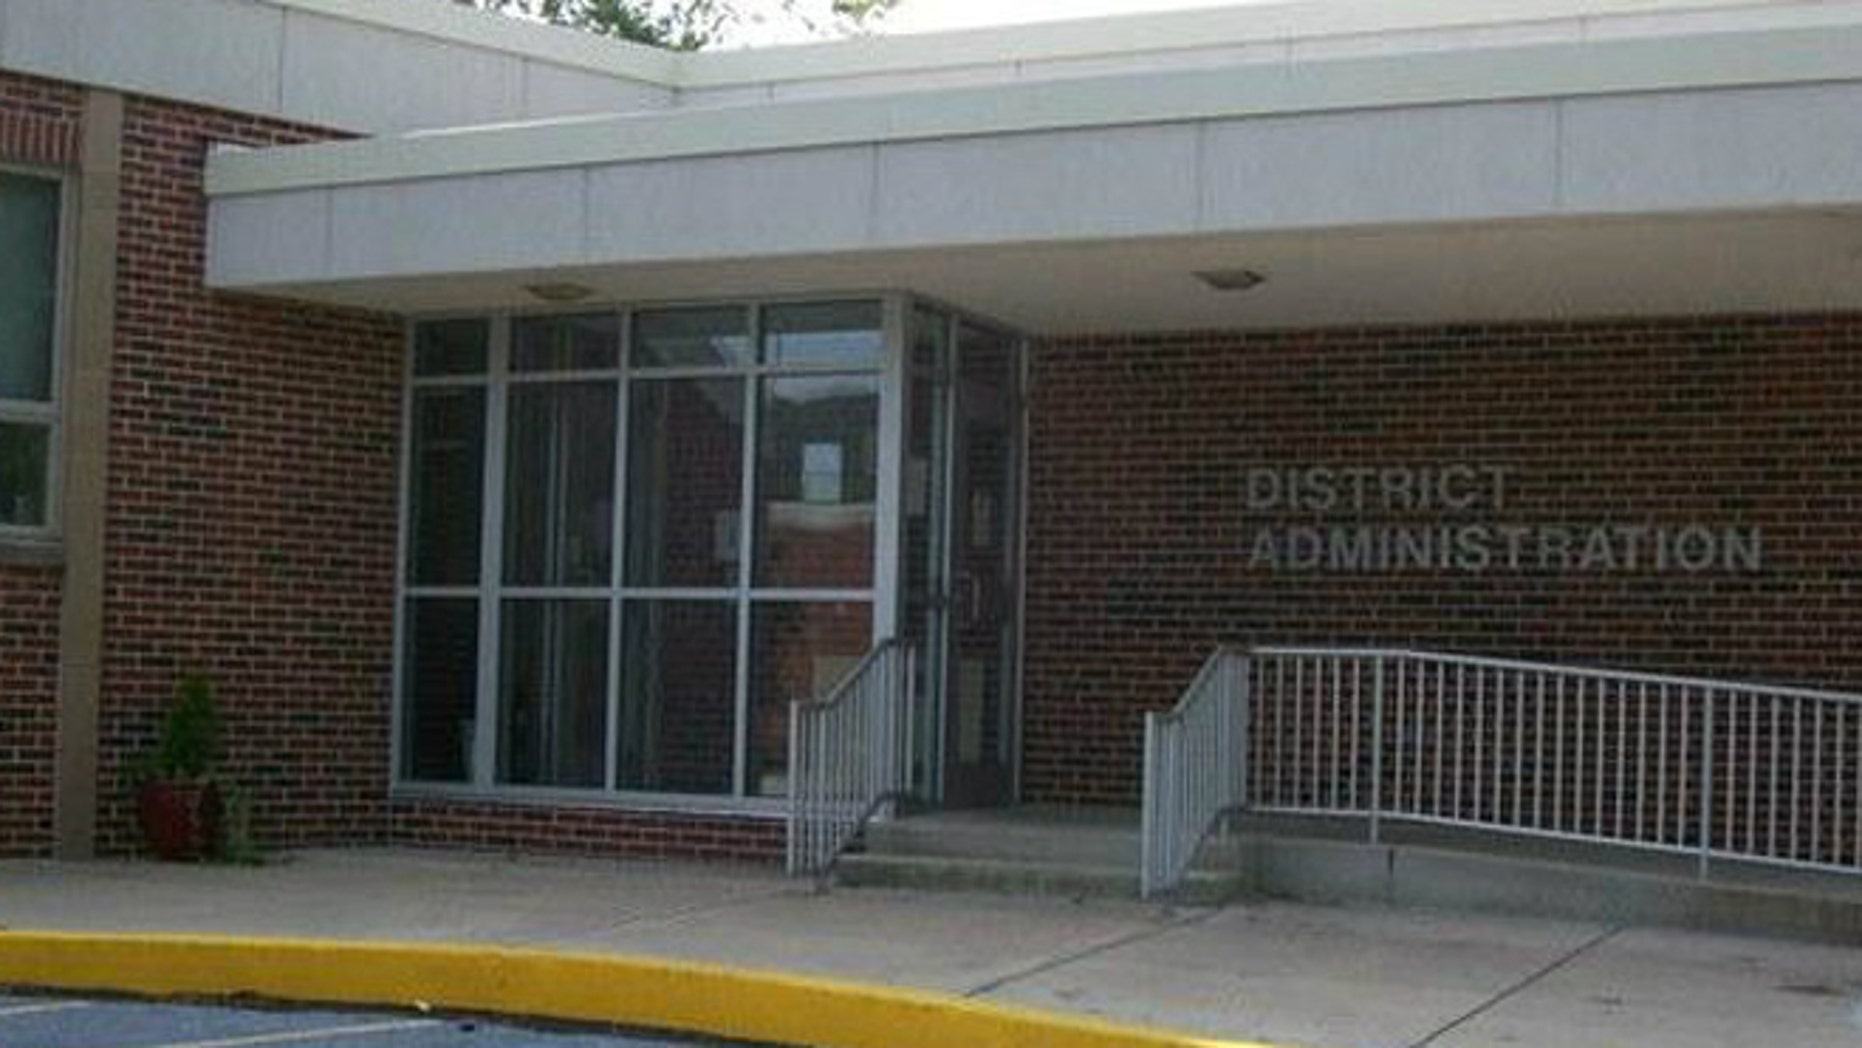 """The possibility of a merger between the Exeter Township and Antietam school districts in Pennsylvania's Berks County will be among the topics to be discussed during a meeting late Tuesday. The time has come for """"some decisions to be made,"""" Antietam School District Superintendent Larry Mayes told FoxNews.com. (Antietamsd.org)"""